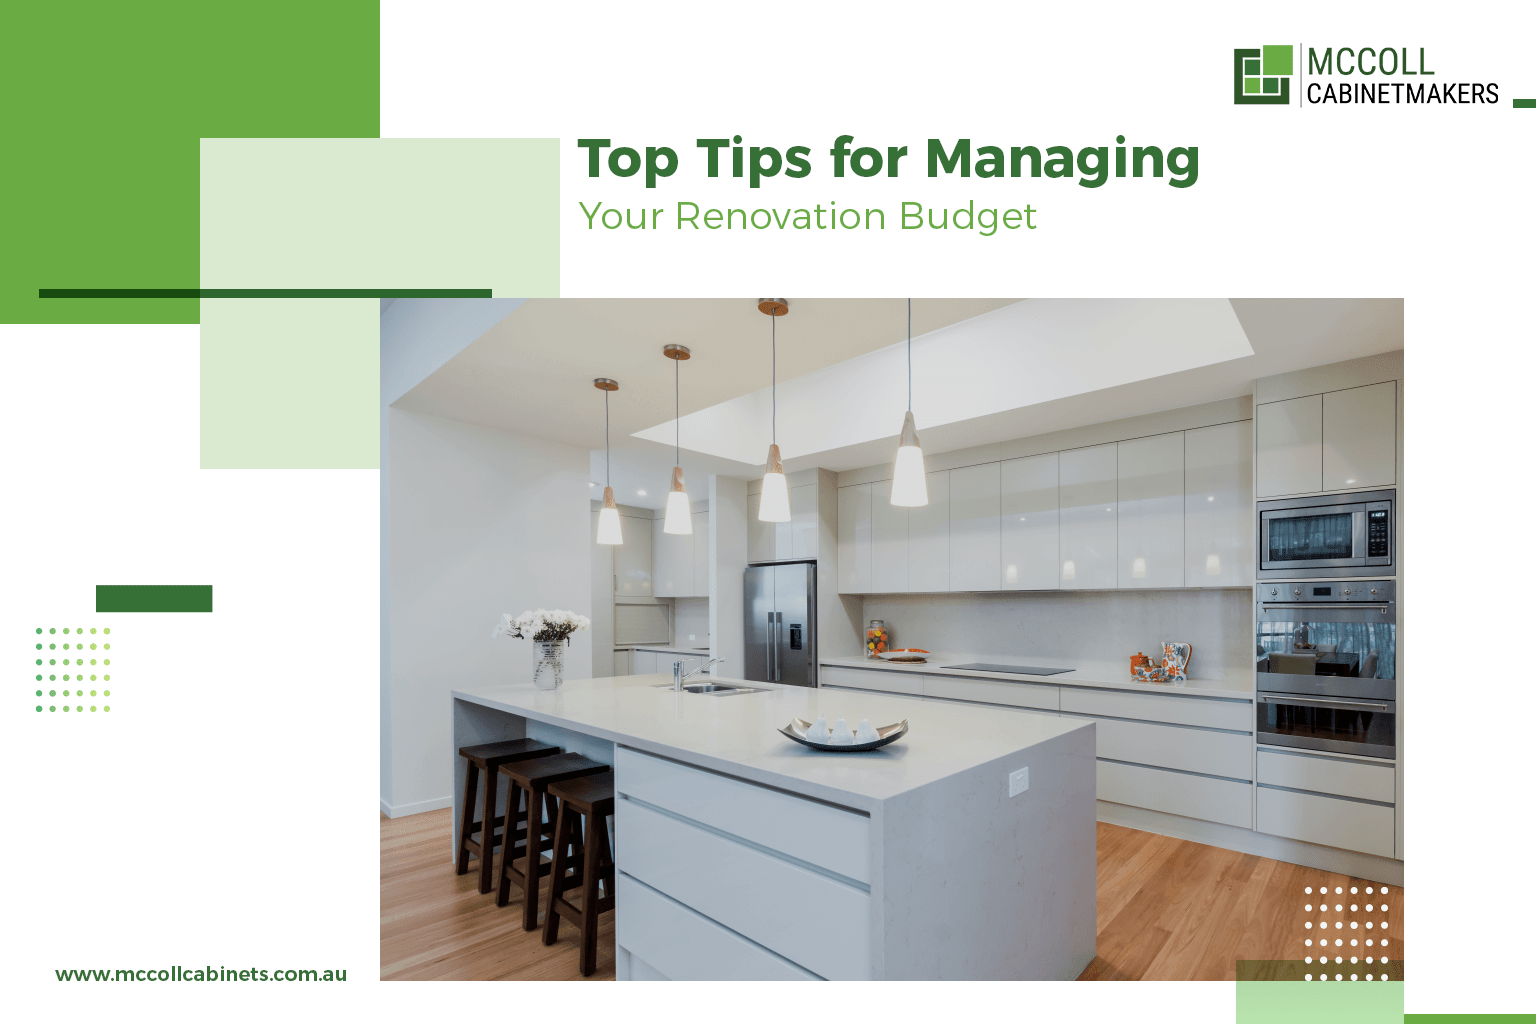 Tips for Managing Your Renovation Budget